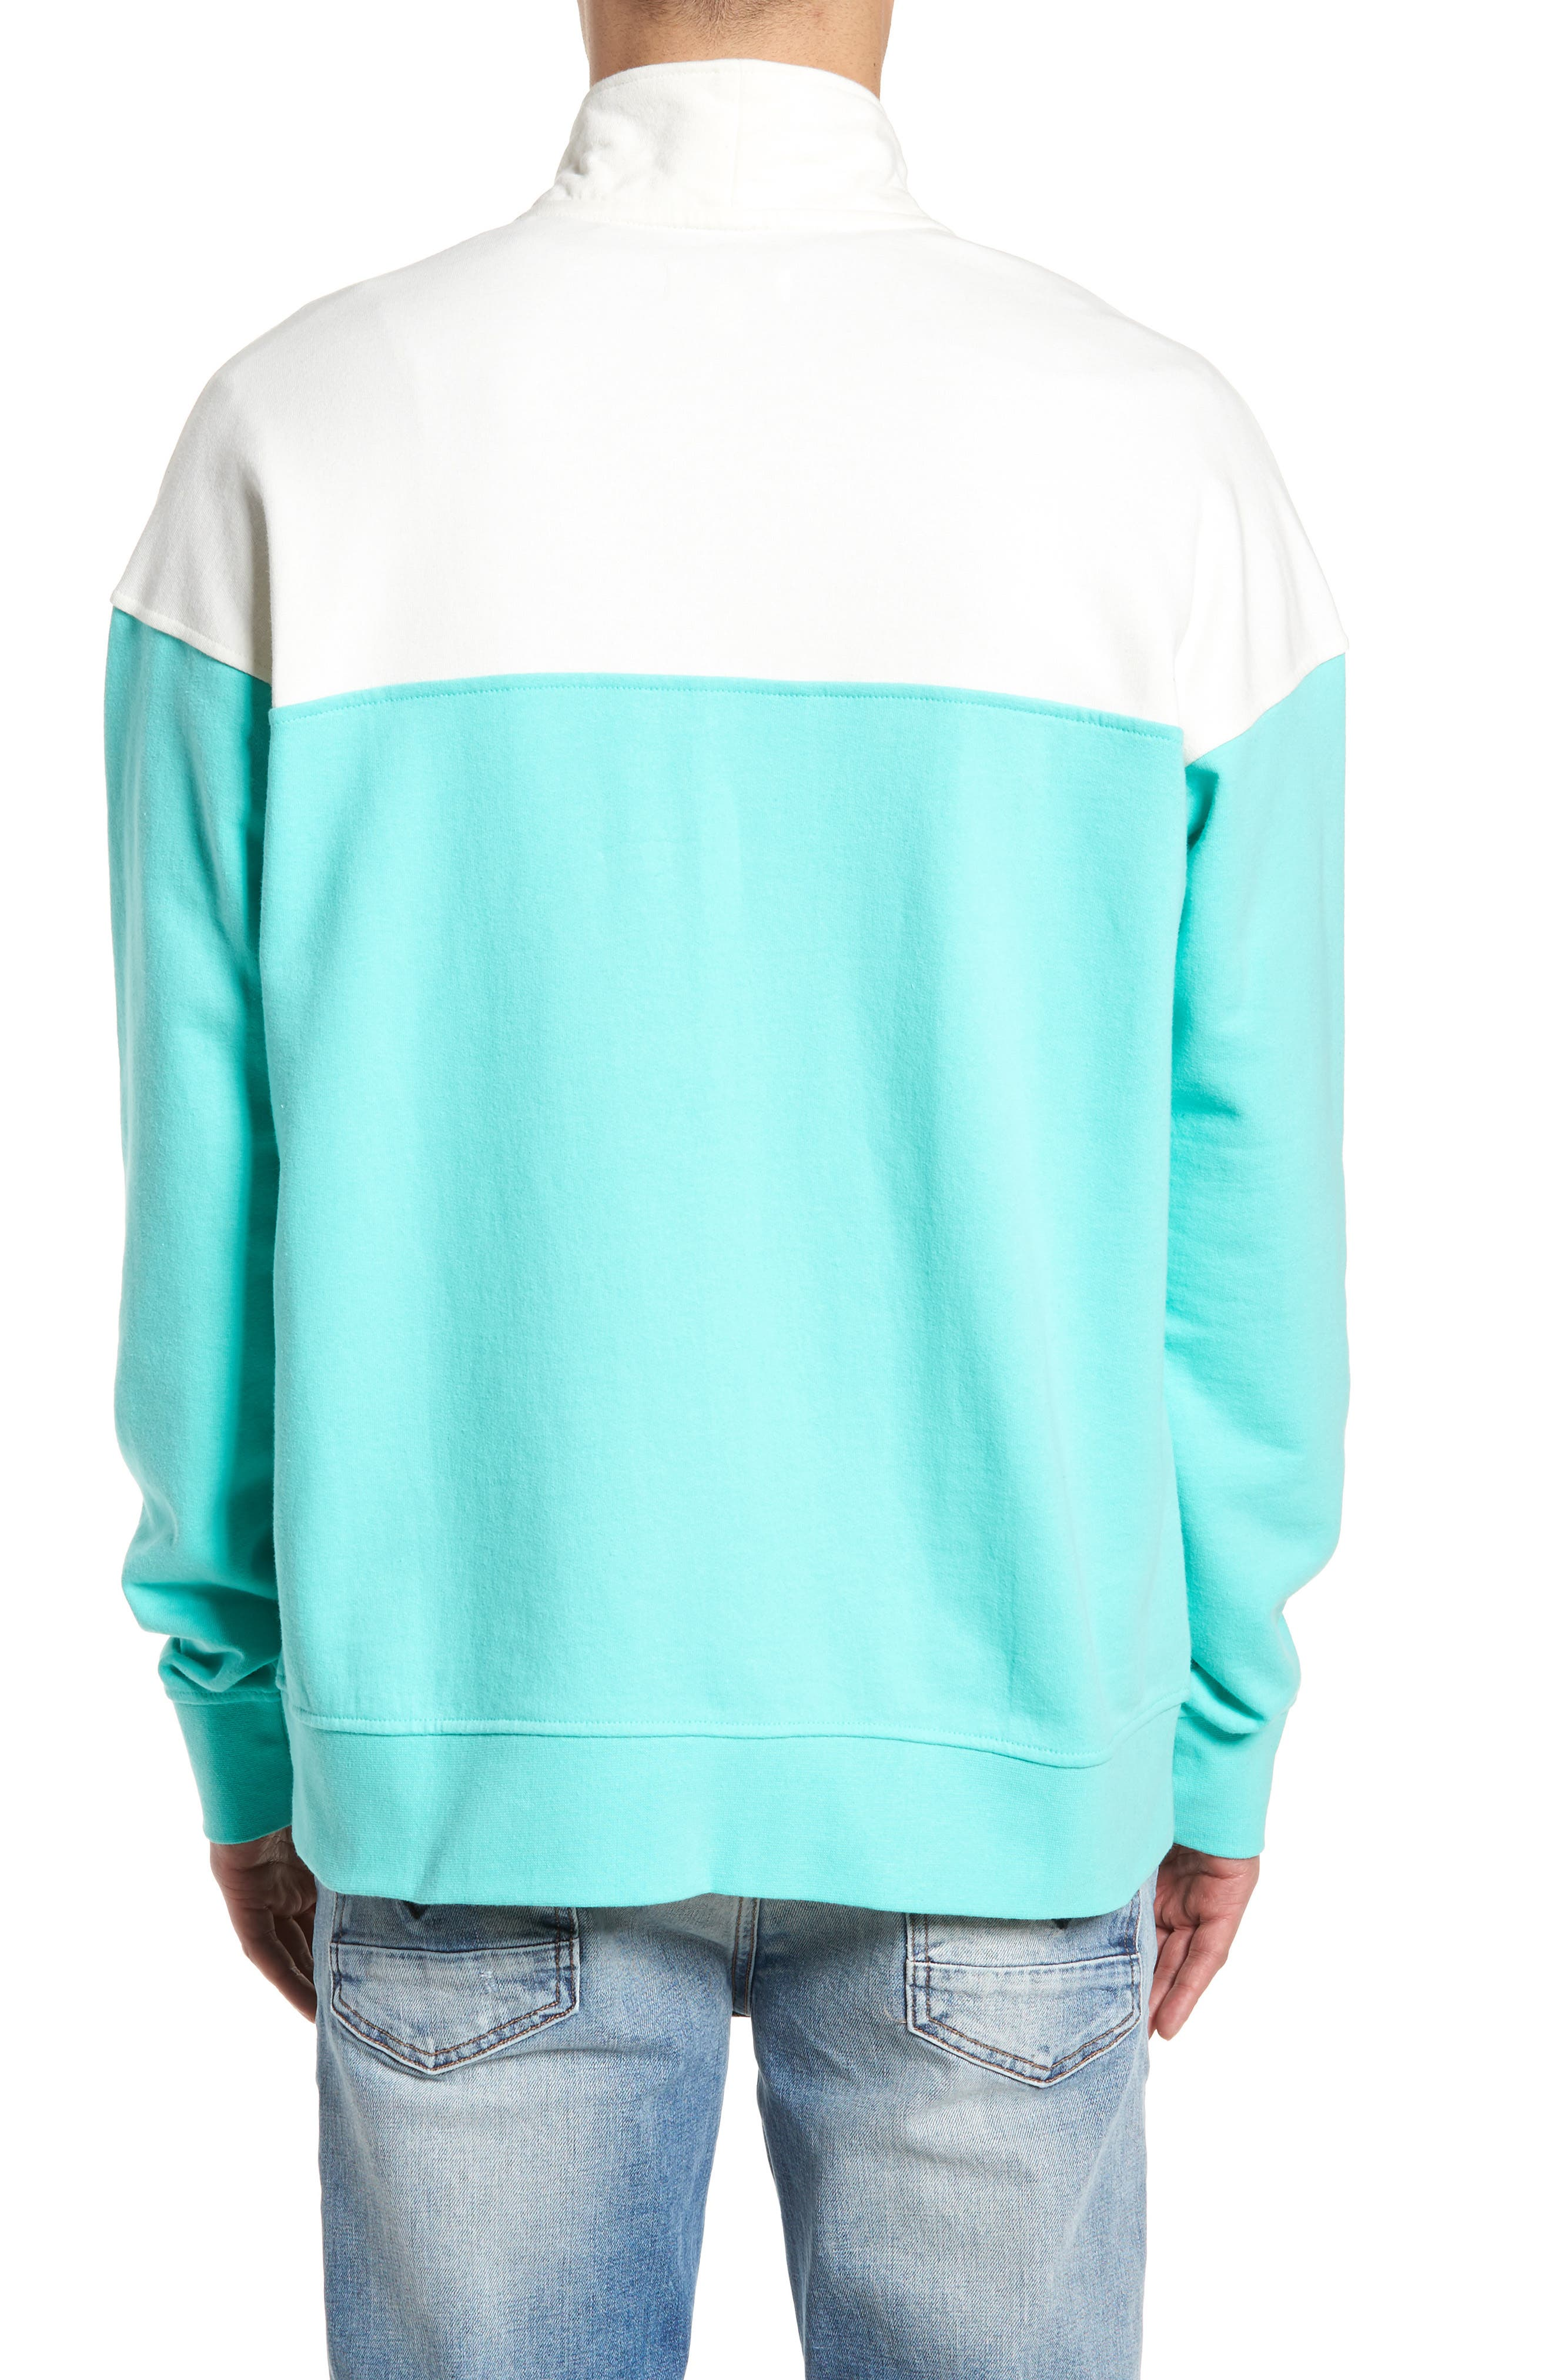 Colorblock Quarter Zip Sweatshirt,                             Alternate thumbnail 2, color,                             Ivory Egret/ Green Largo